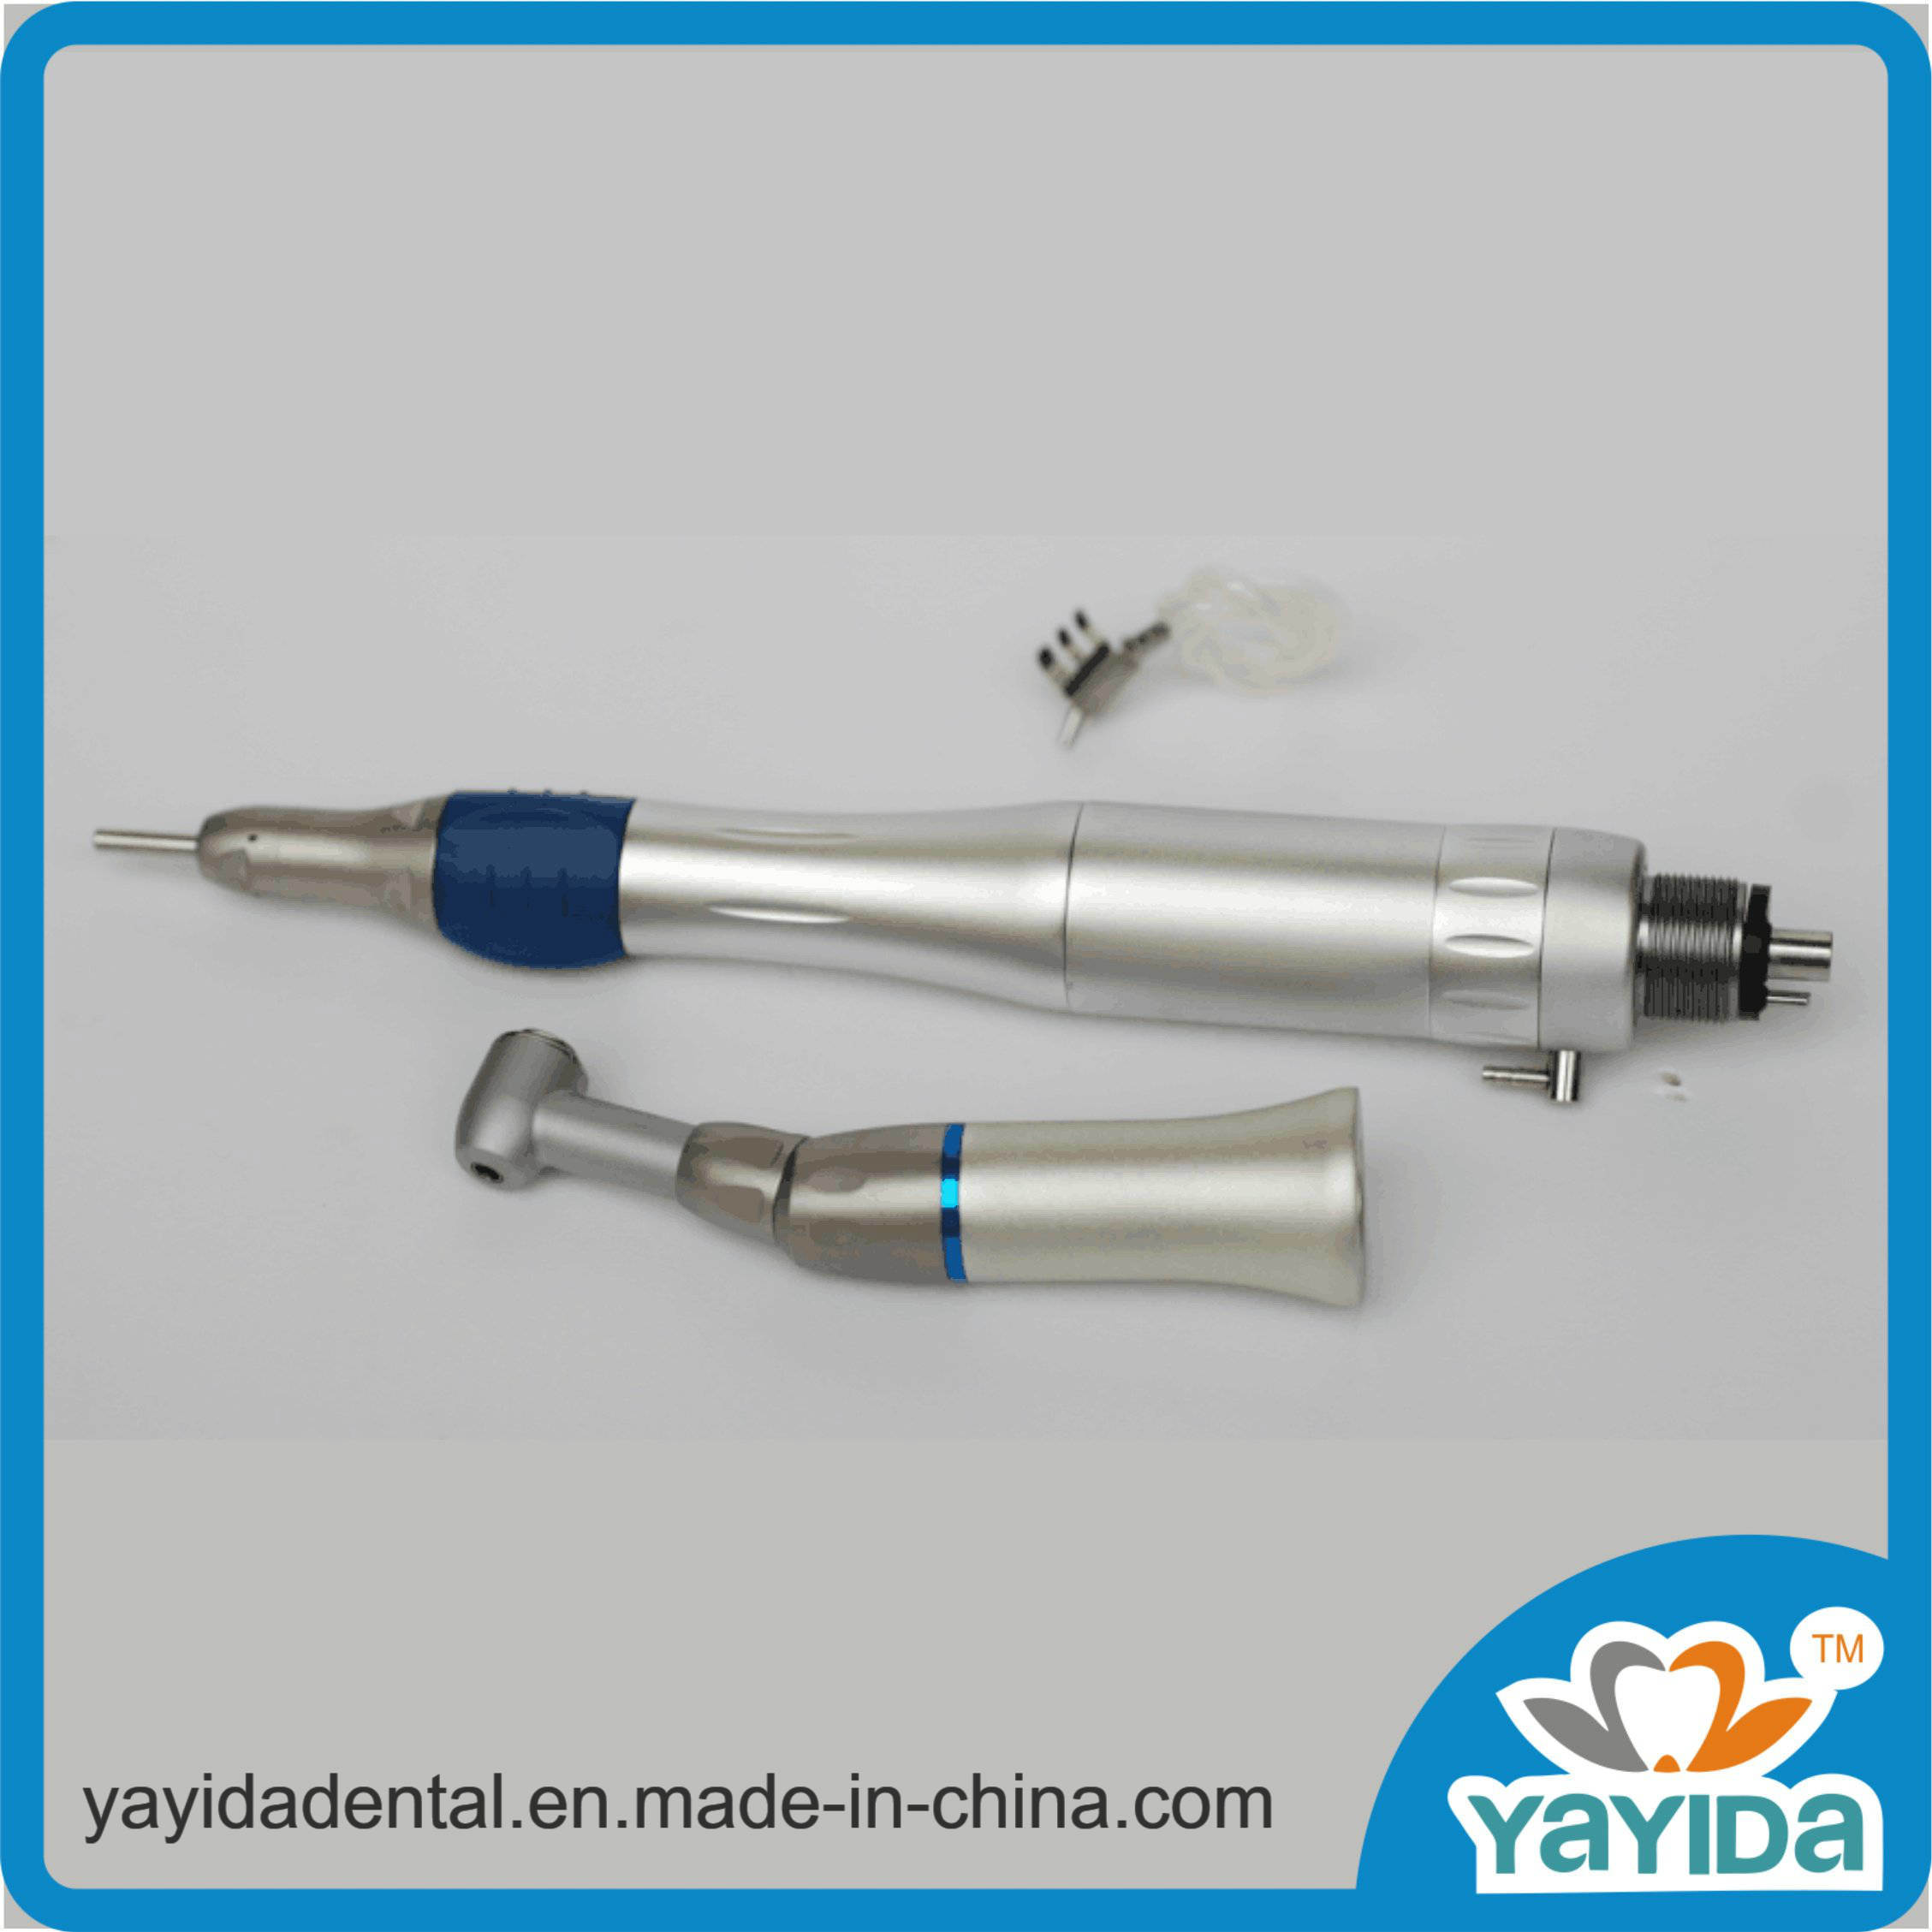 External Low Speed Handpiece Used in Dental Chair for Dentists